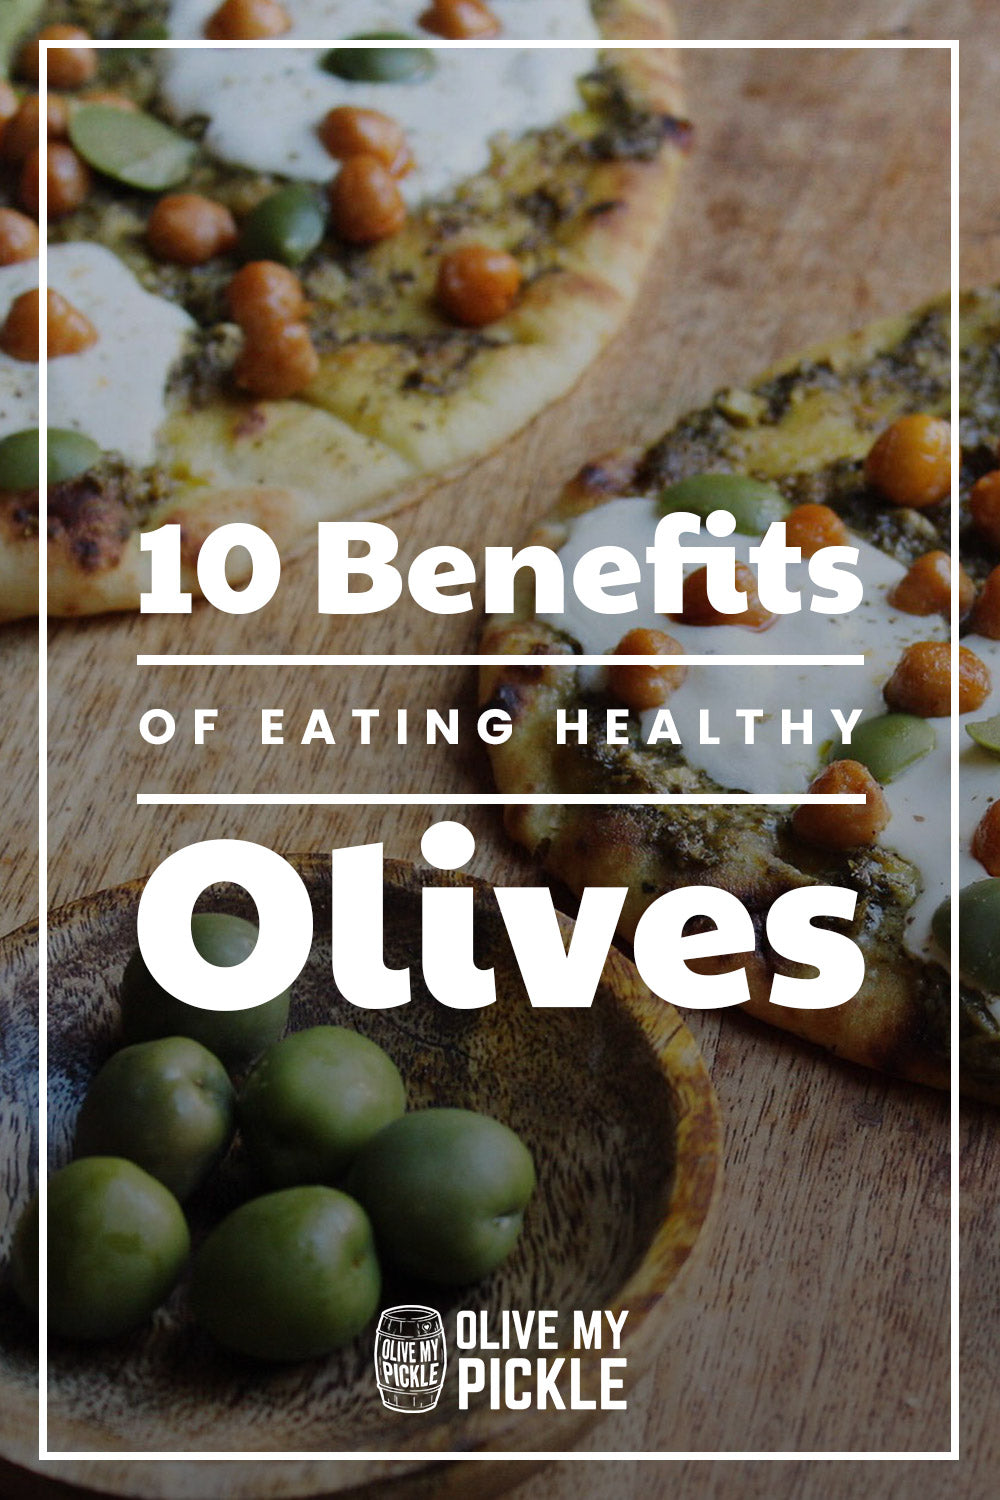 Benefits of Eating Healthy Olives